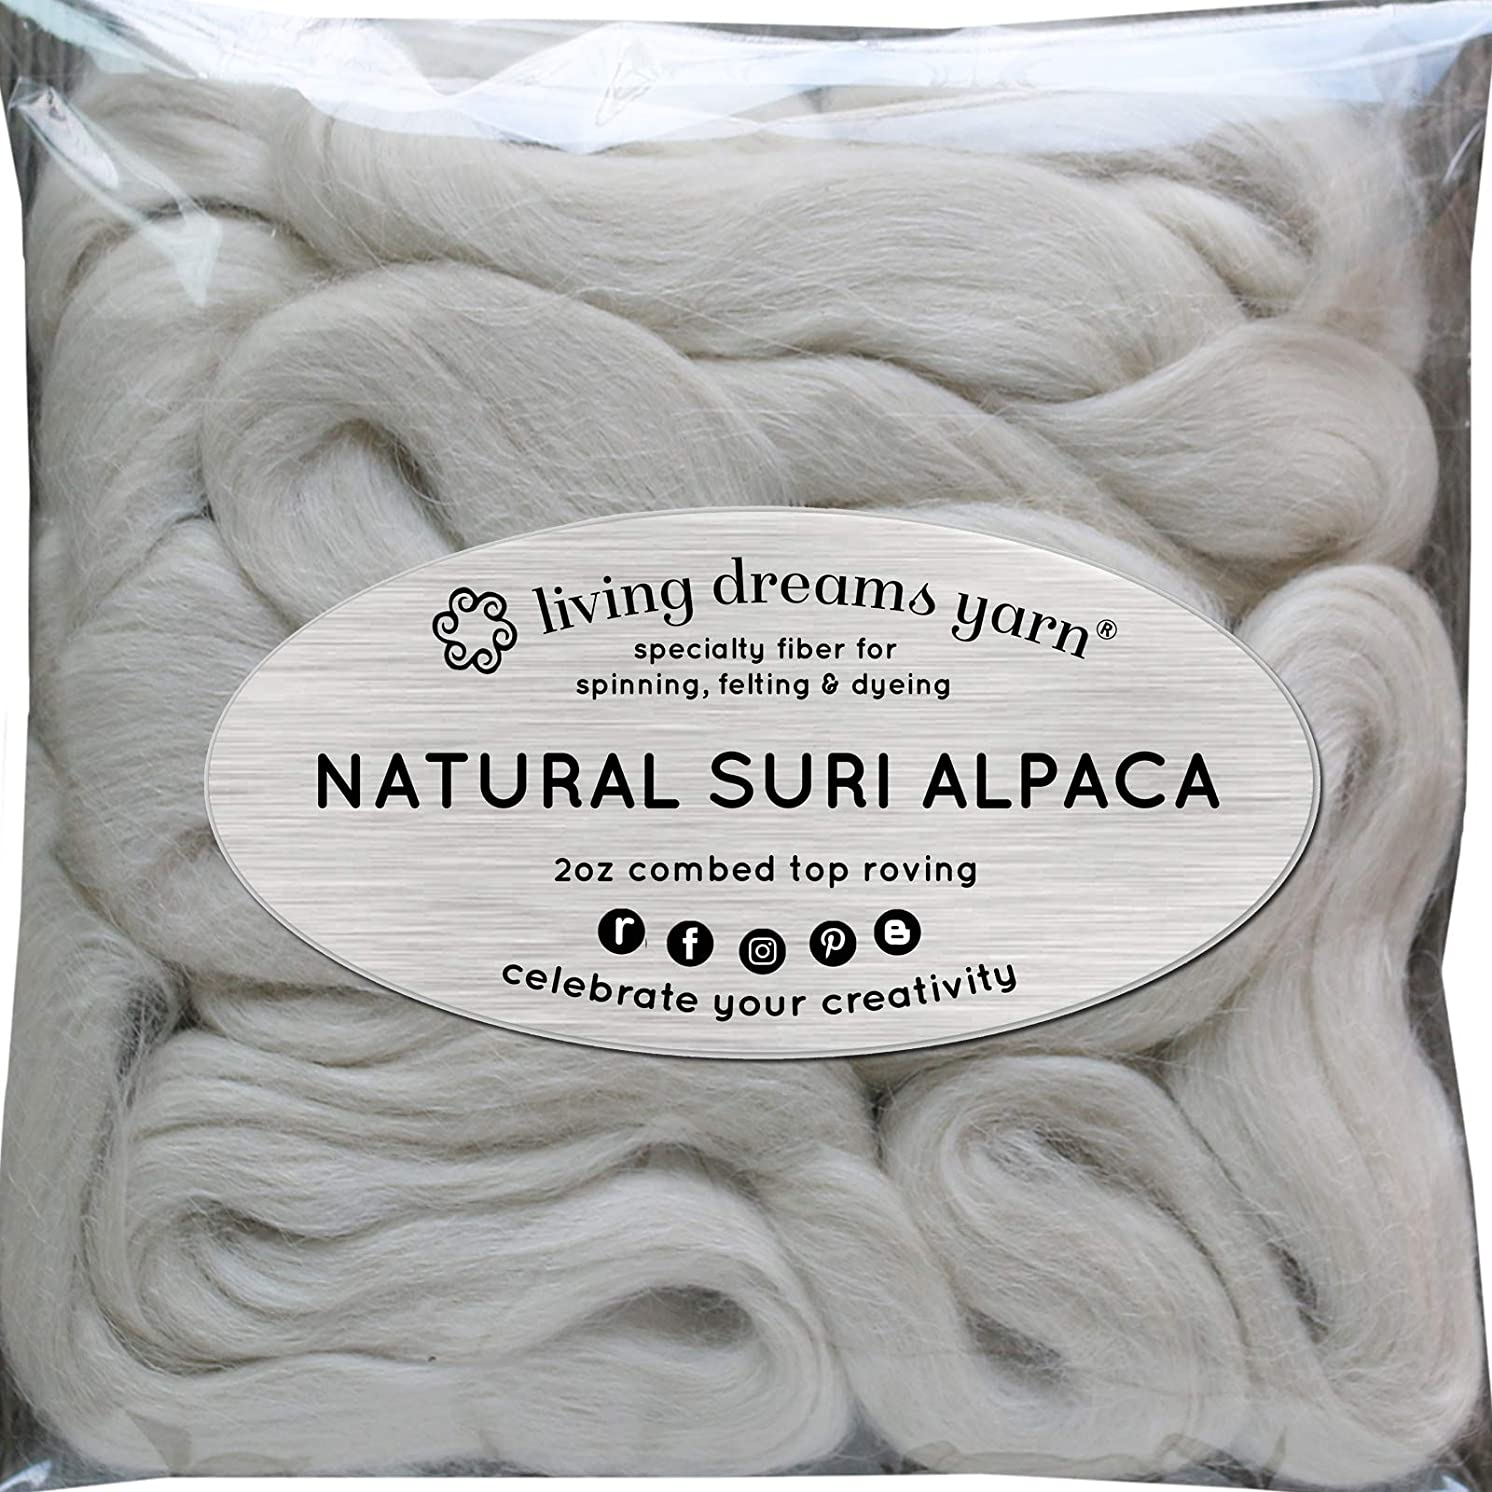 Suri Alpaca Fiber for Spinning Blending Felting Dyeing and Doll Making. Natural White Combed Top.